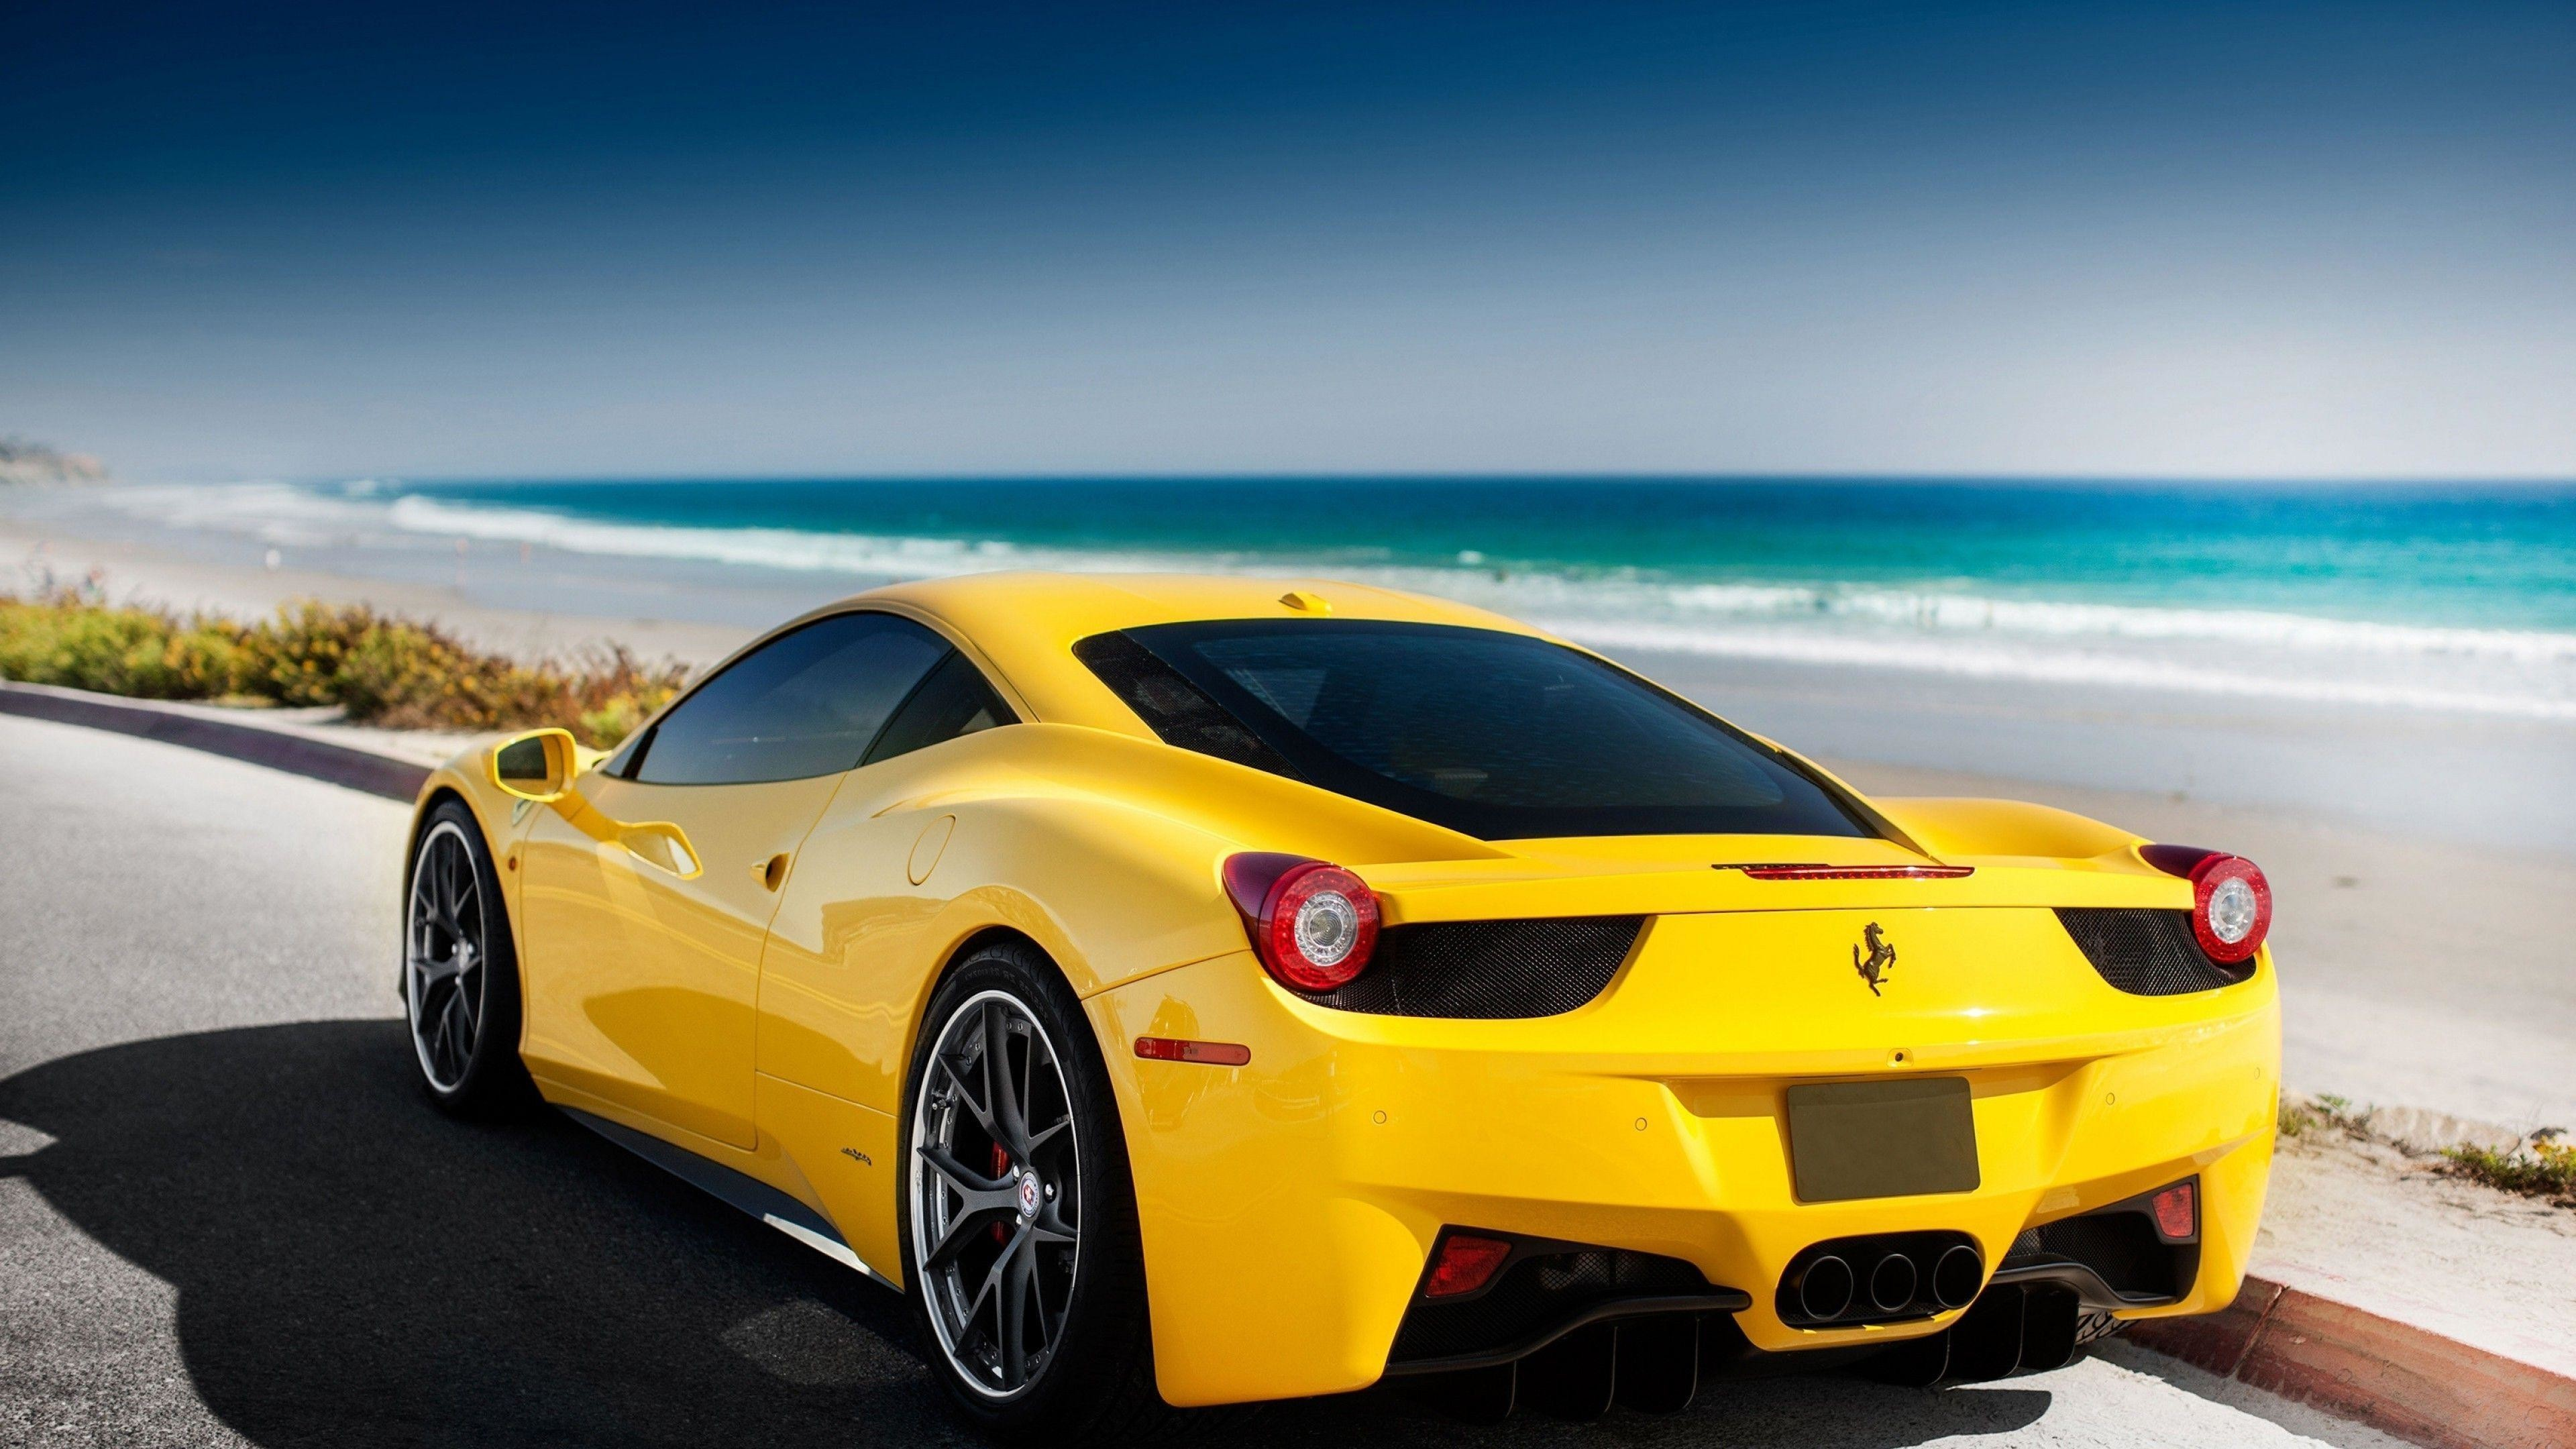 Ferrari 458 Speciale Spider Ferrari 458 Italia 2017 1051730 Hd Wallpaper Backgrounds Download